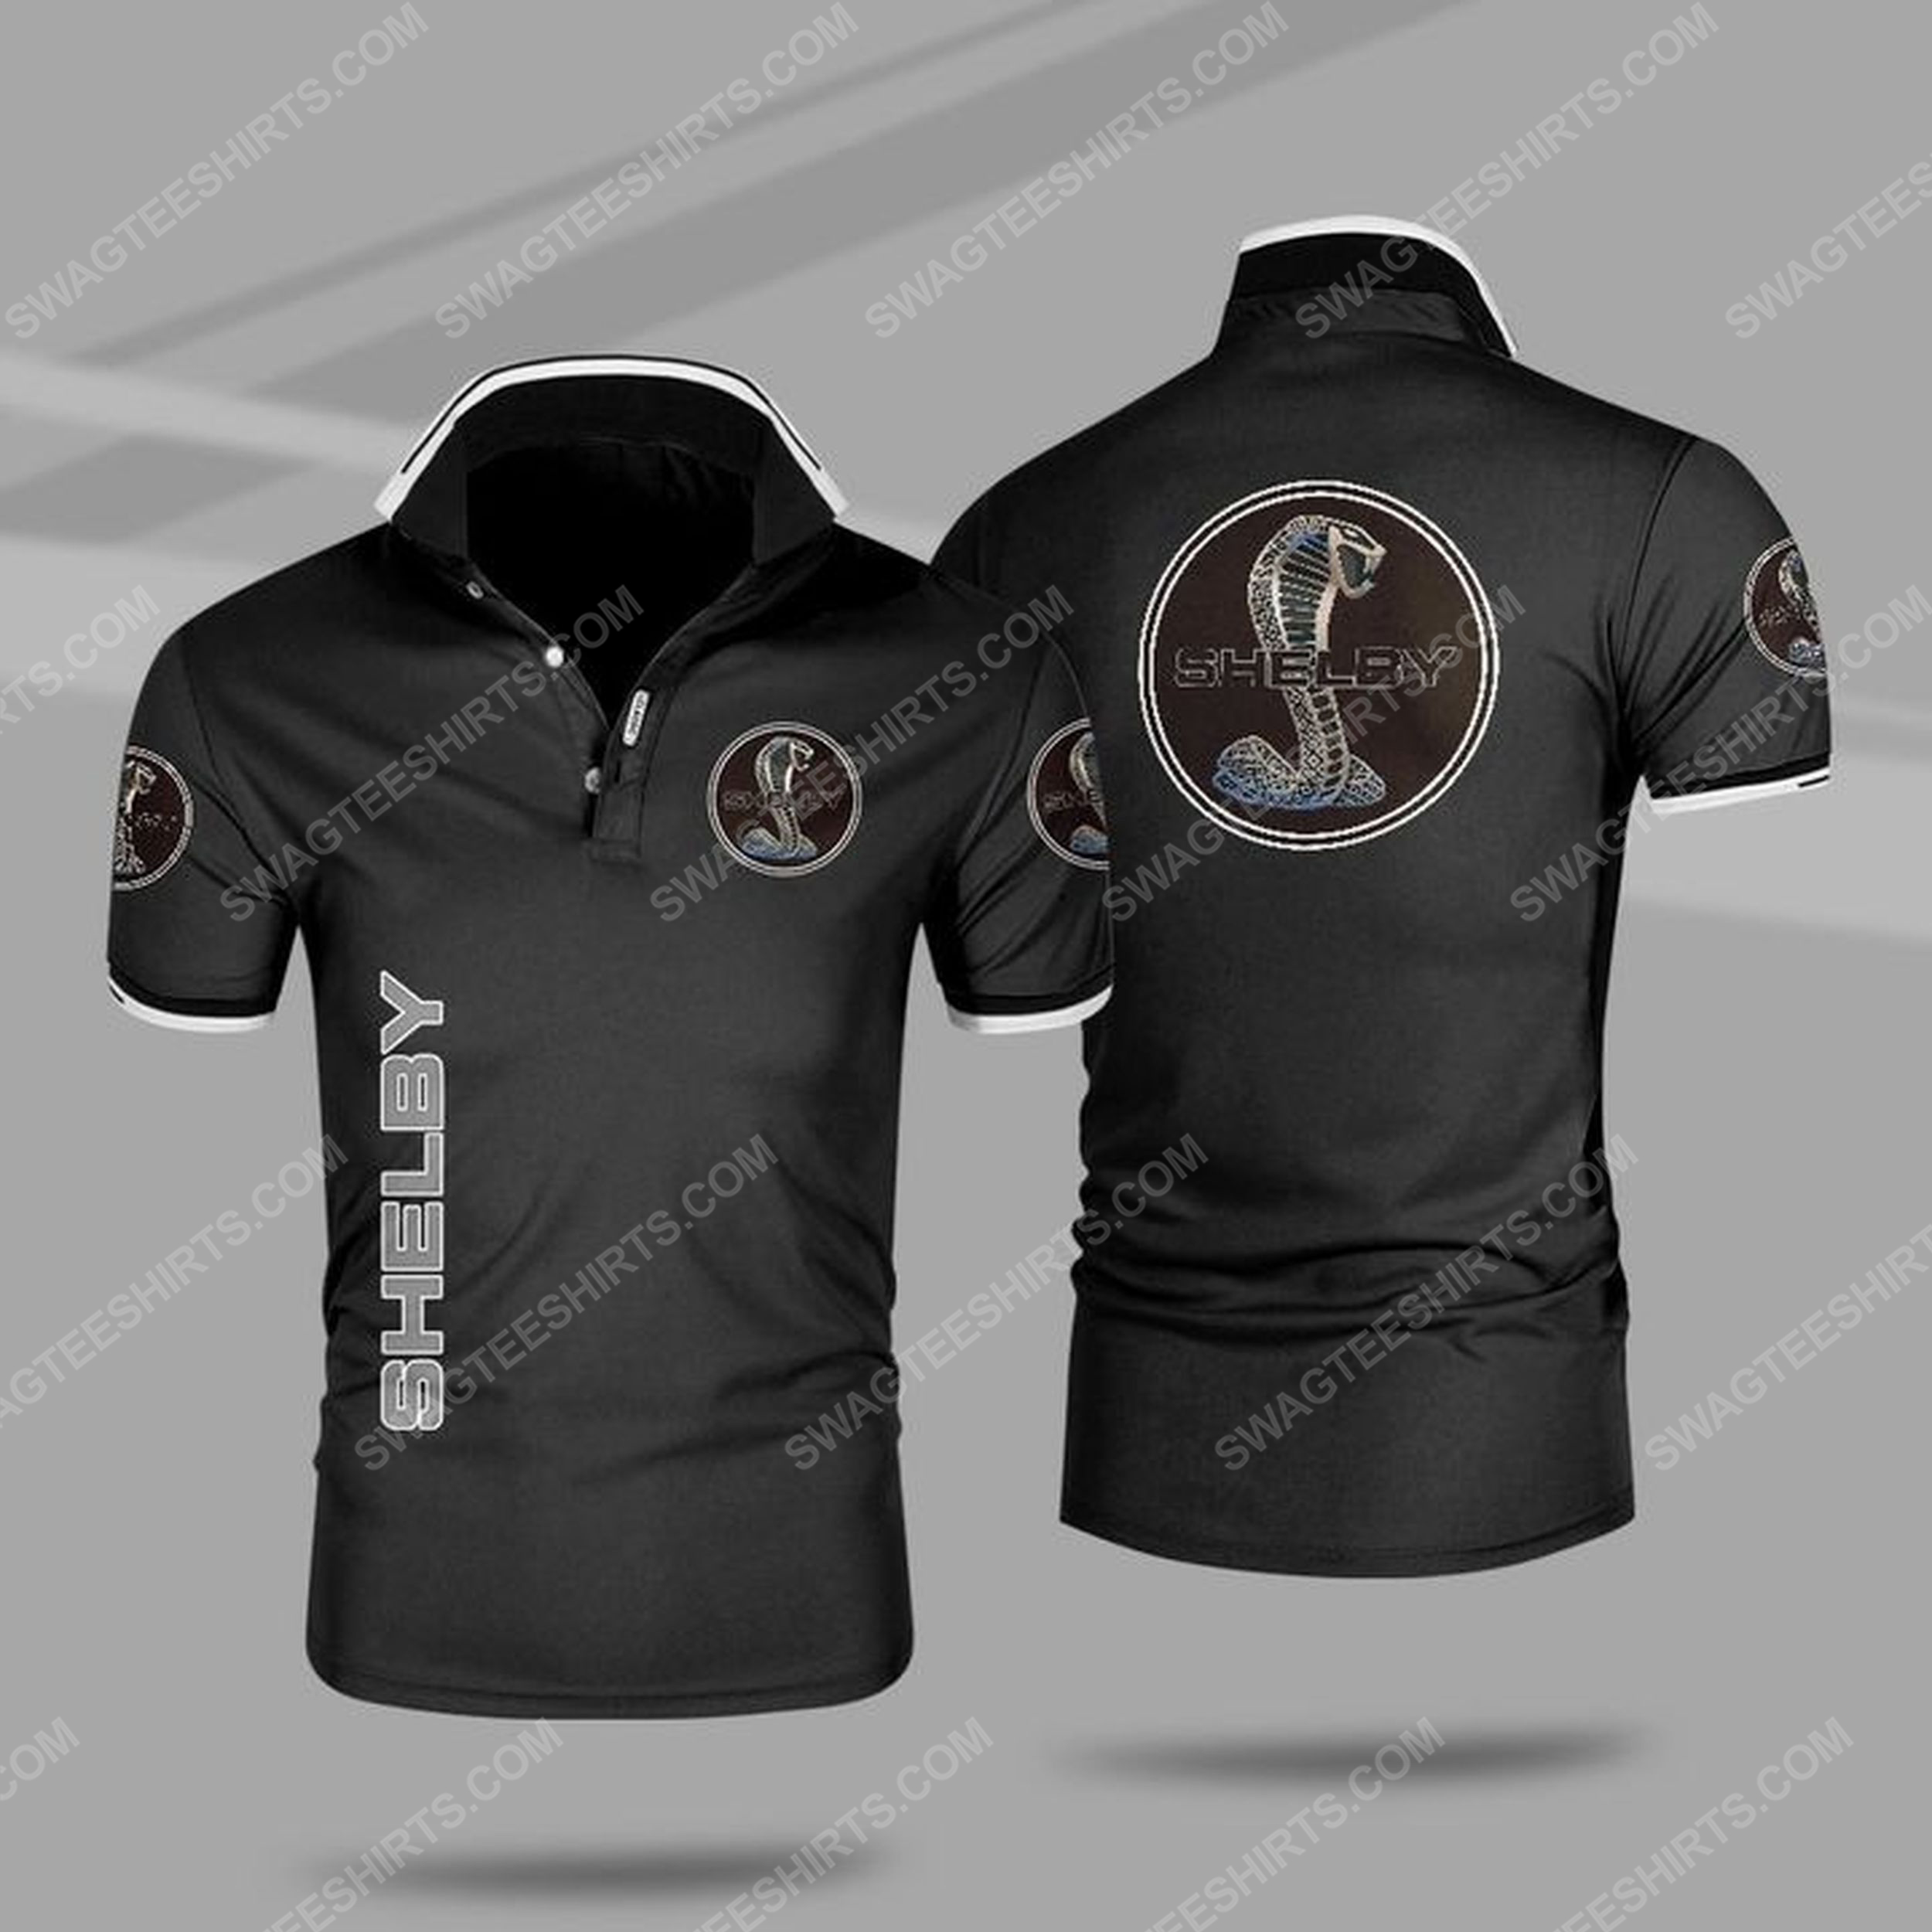 The ford mustang shelby car all over print polo shirt - black 1